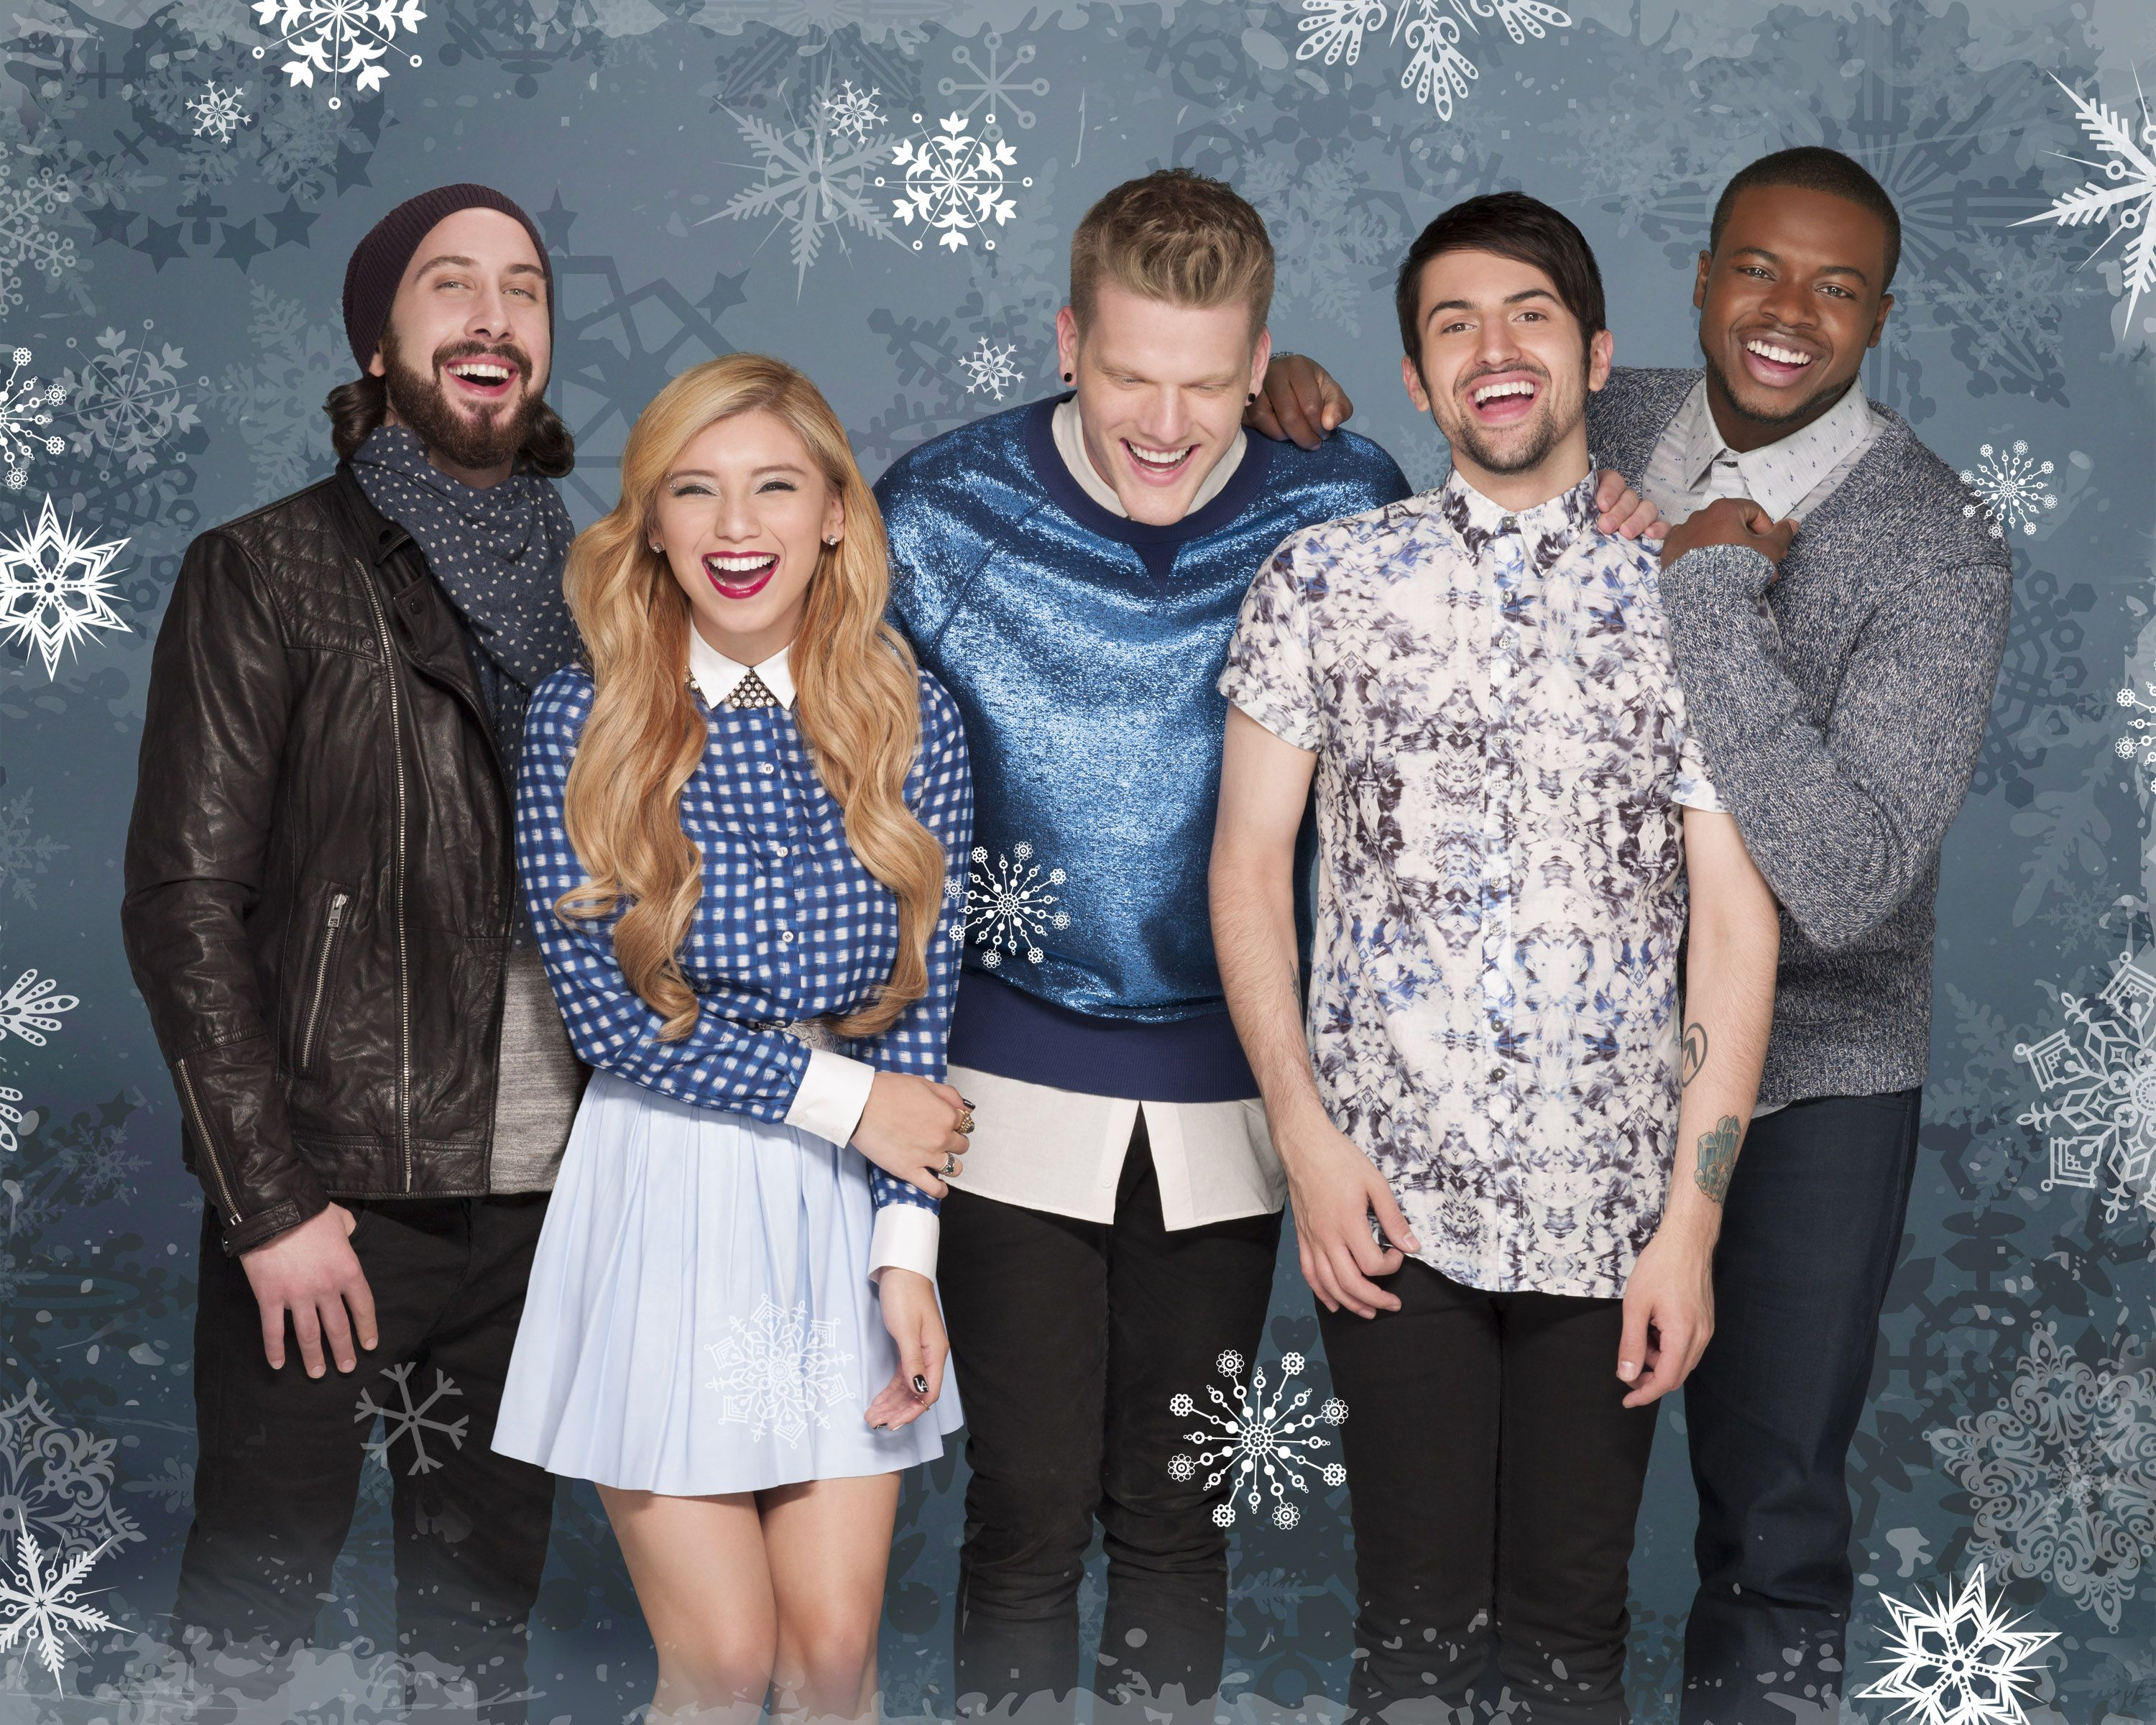 15 Good Christmas Songs We Actually Want To Listen To Society19 In 2020 Pentatonix Christmas Song Songs